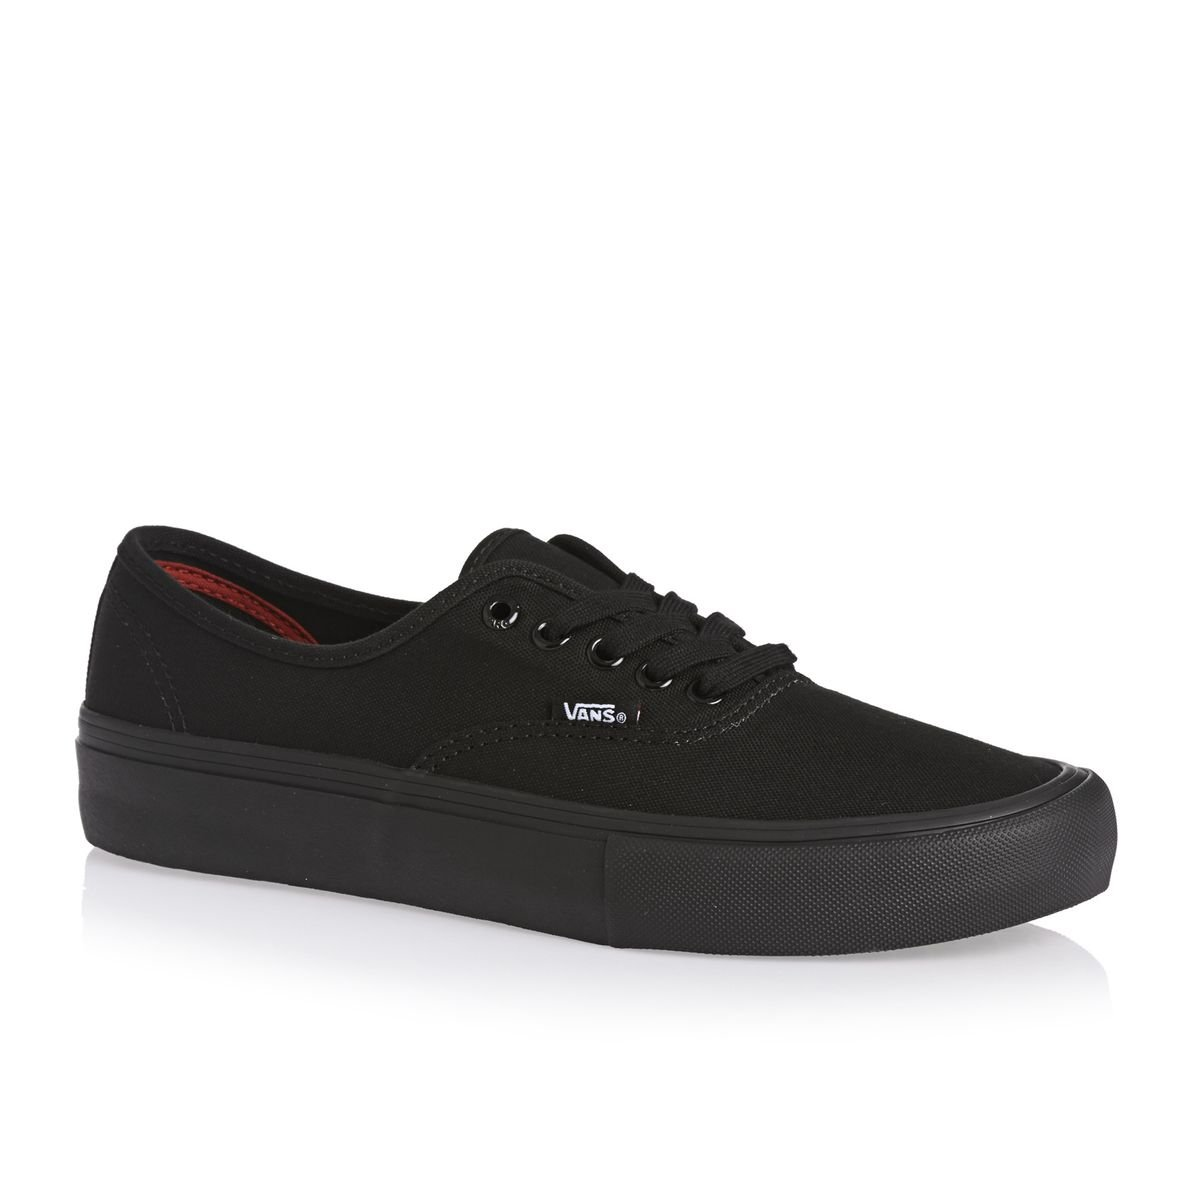 Vans Authentic, Zapatillas de Tela Unisex 42.5 EU|Black/black